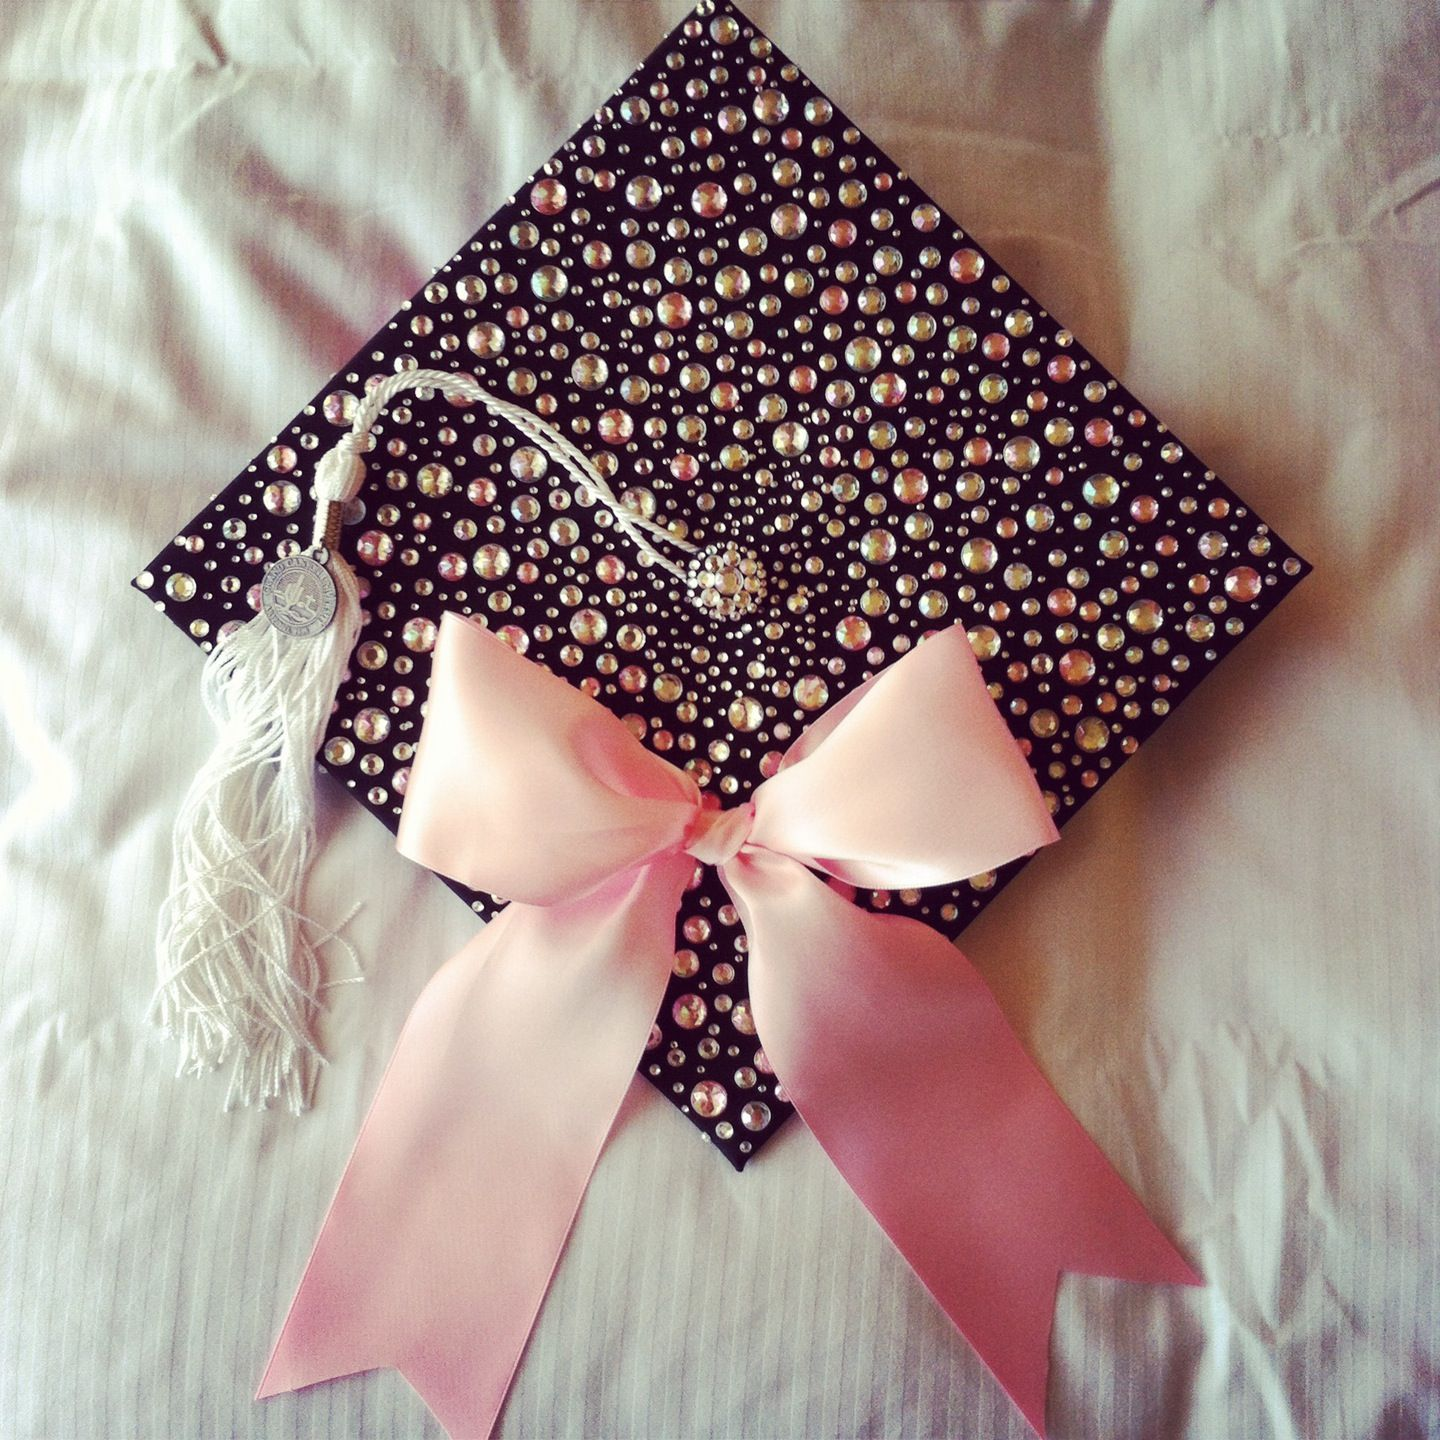 how to decorate graduation cap with glitter